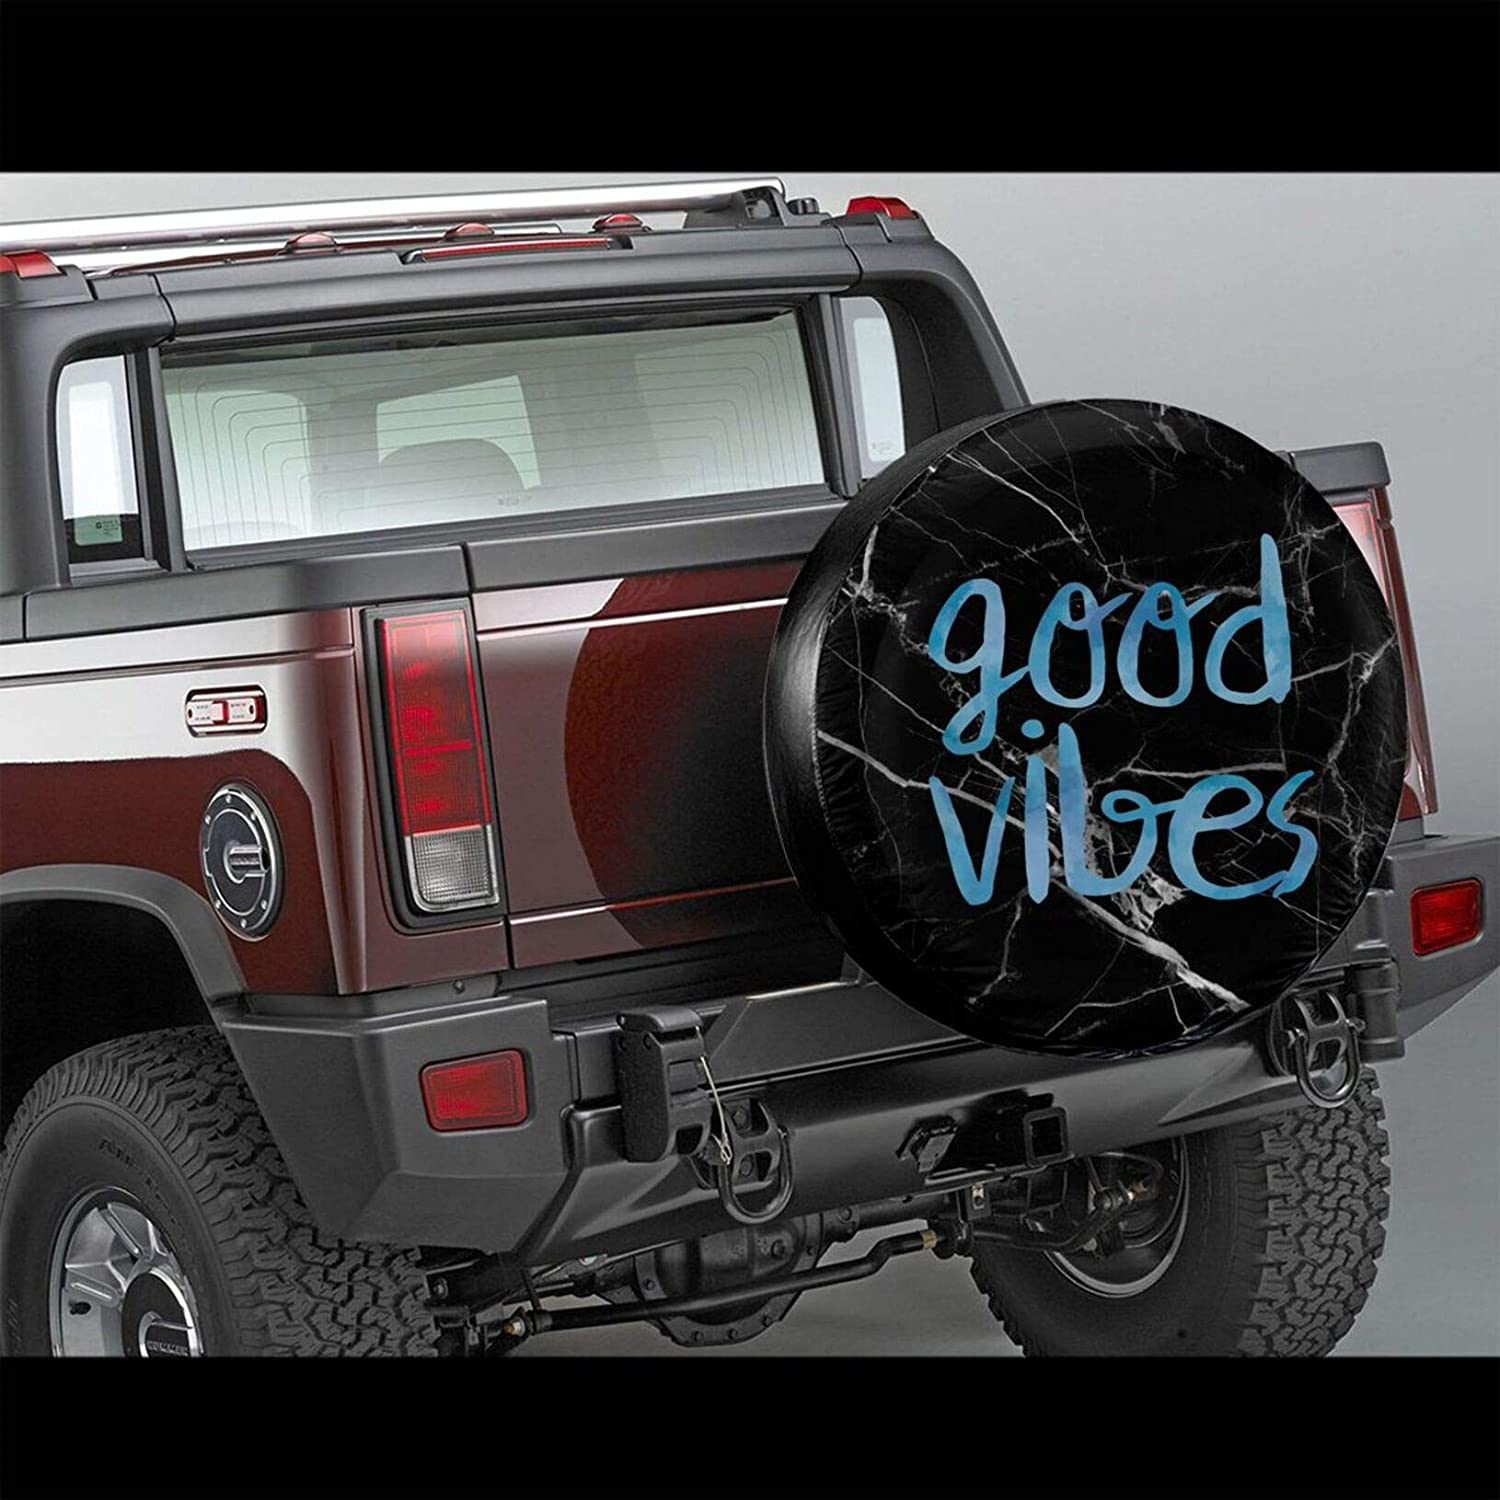 Fuuya Good Vibes Spare Tire Cover for Jeep Trailer RV SUV Truck Camper